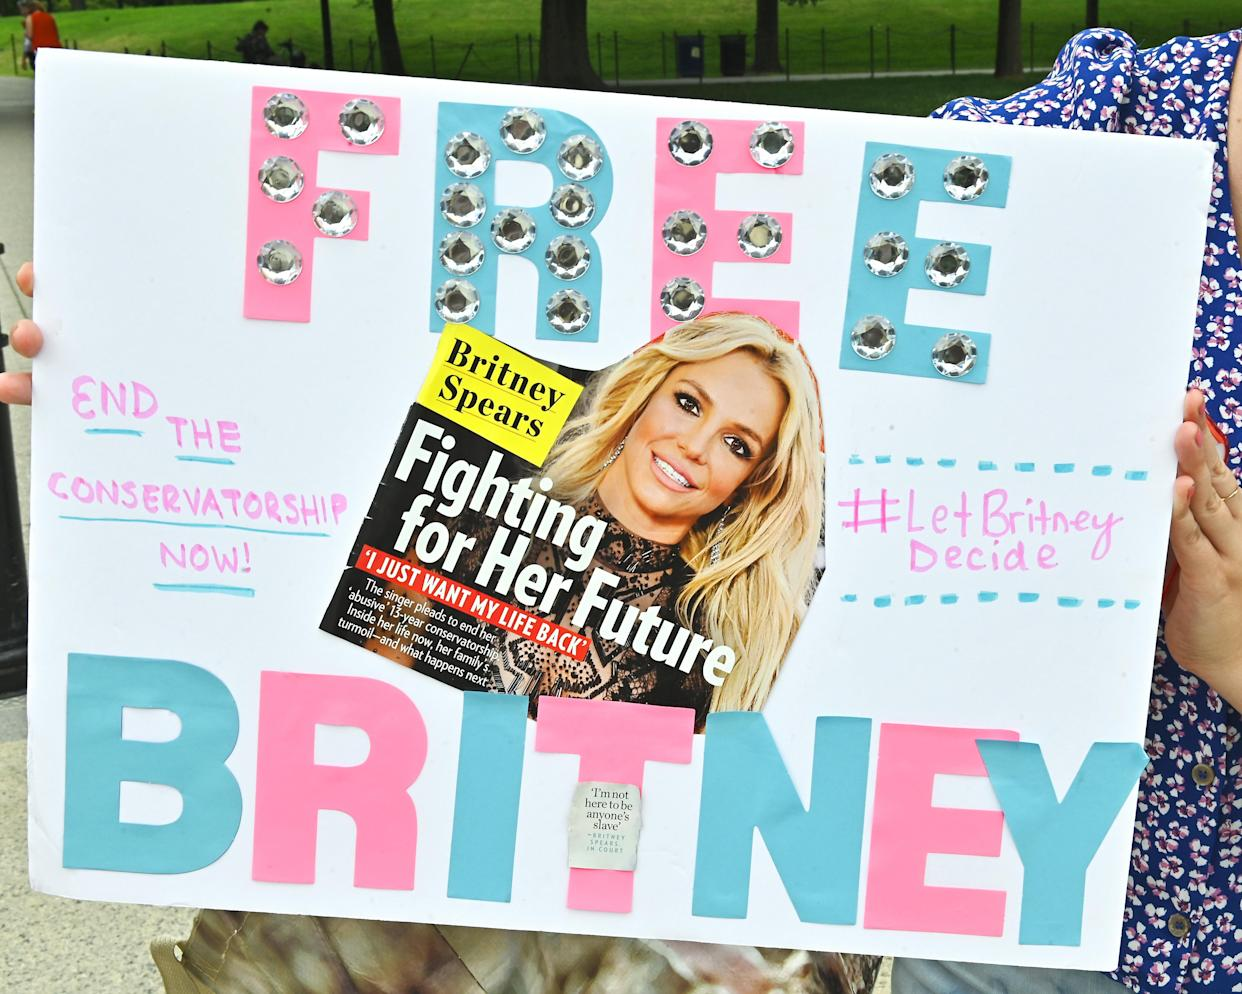 Signs at the #FreeBritney Rally at the Lincoln Memorial in July  in Washington, D.C. The #FreeBritney movement seeks an end to a conservatorship of the singer managed by her father, Jamie Spears, and Jodi Montgomery, which controls her assets and business dealings, following her involuntary hospitalization for mental care in 2008. (Shannon Finney/Getty Images)